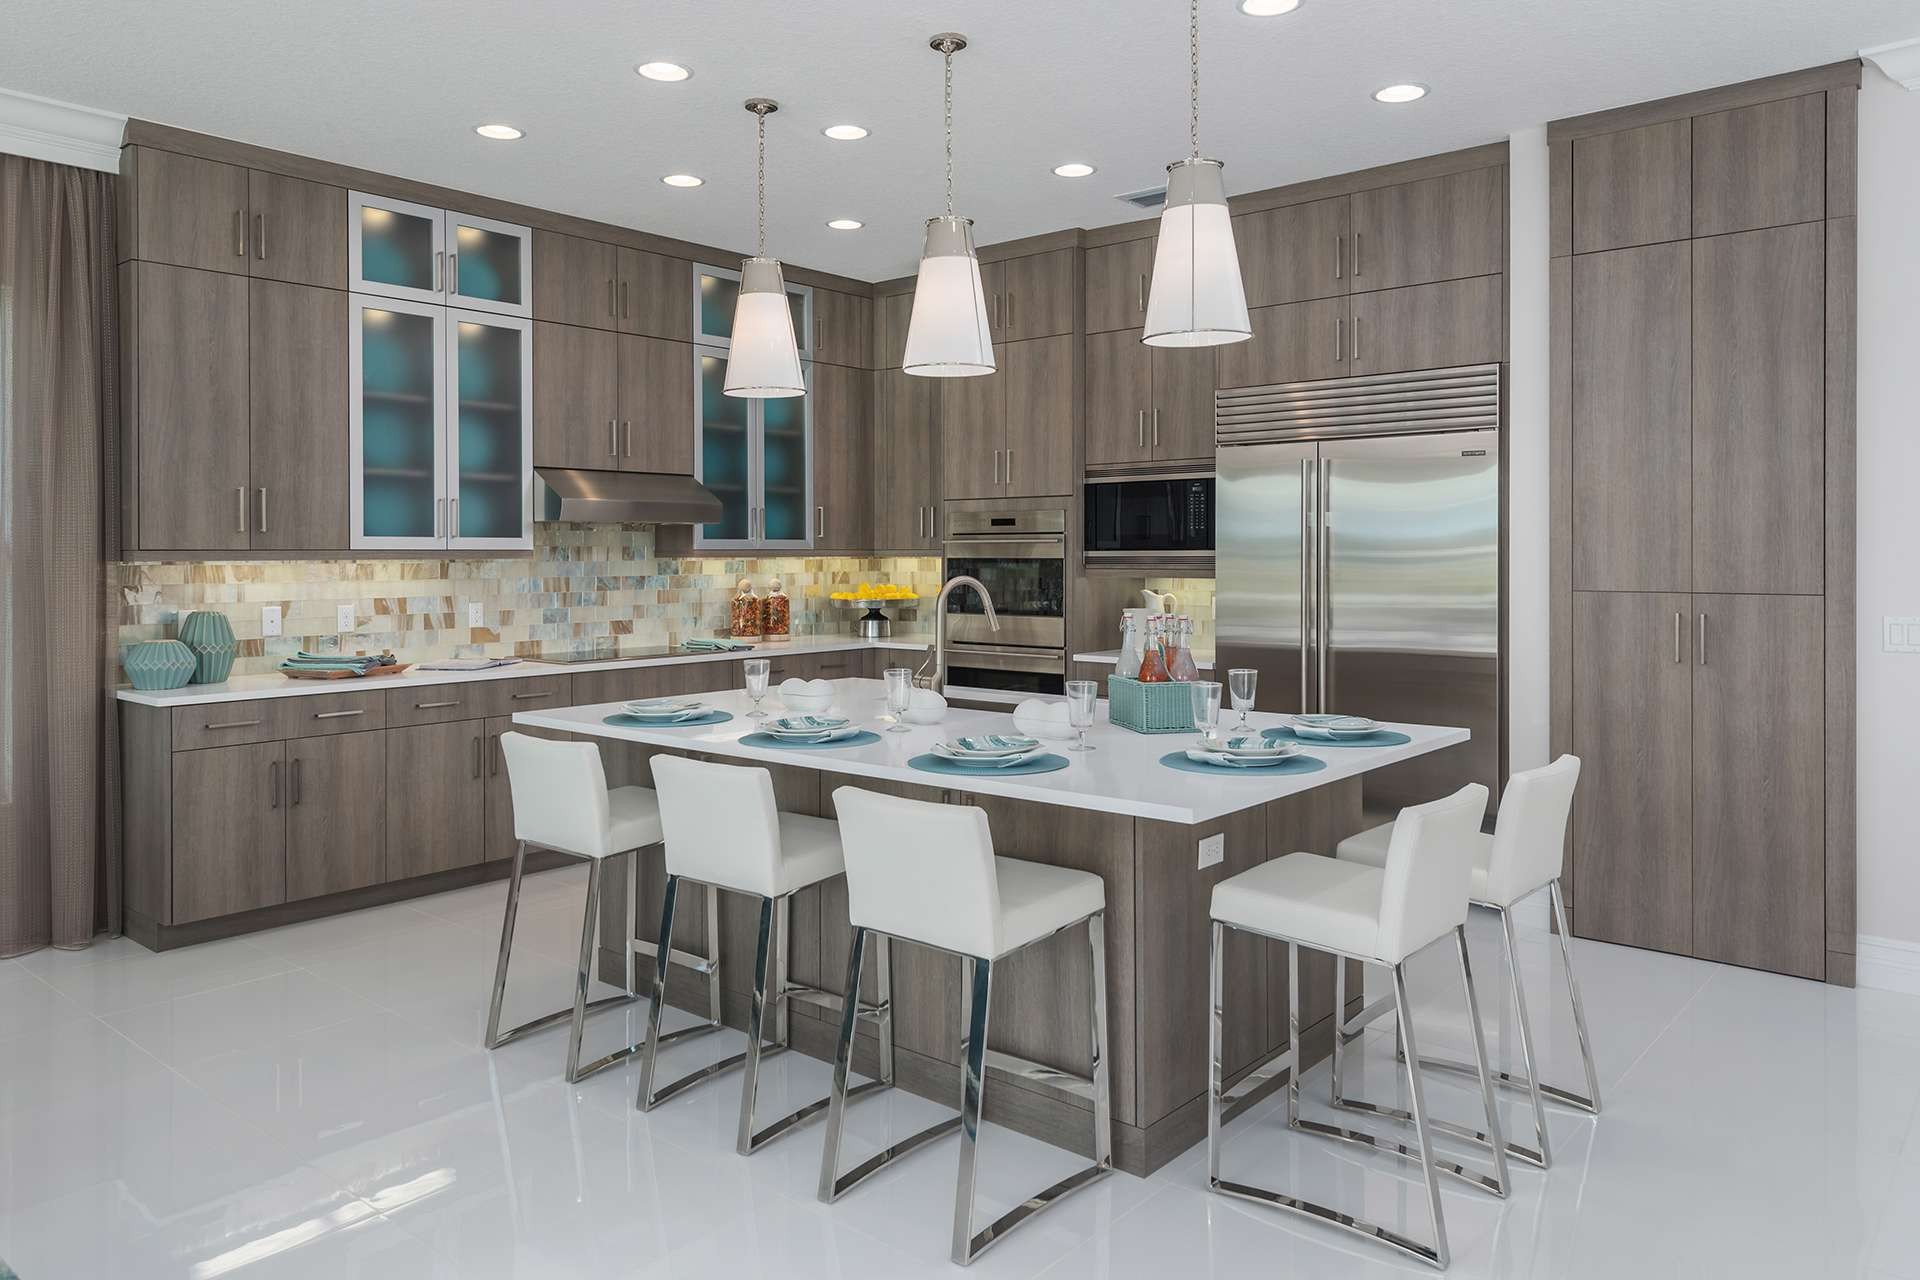 Kitchen featured in the Sonoma By GL Homes in Palm Beach County, FL